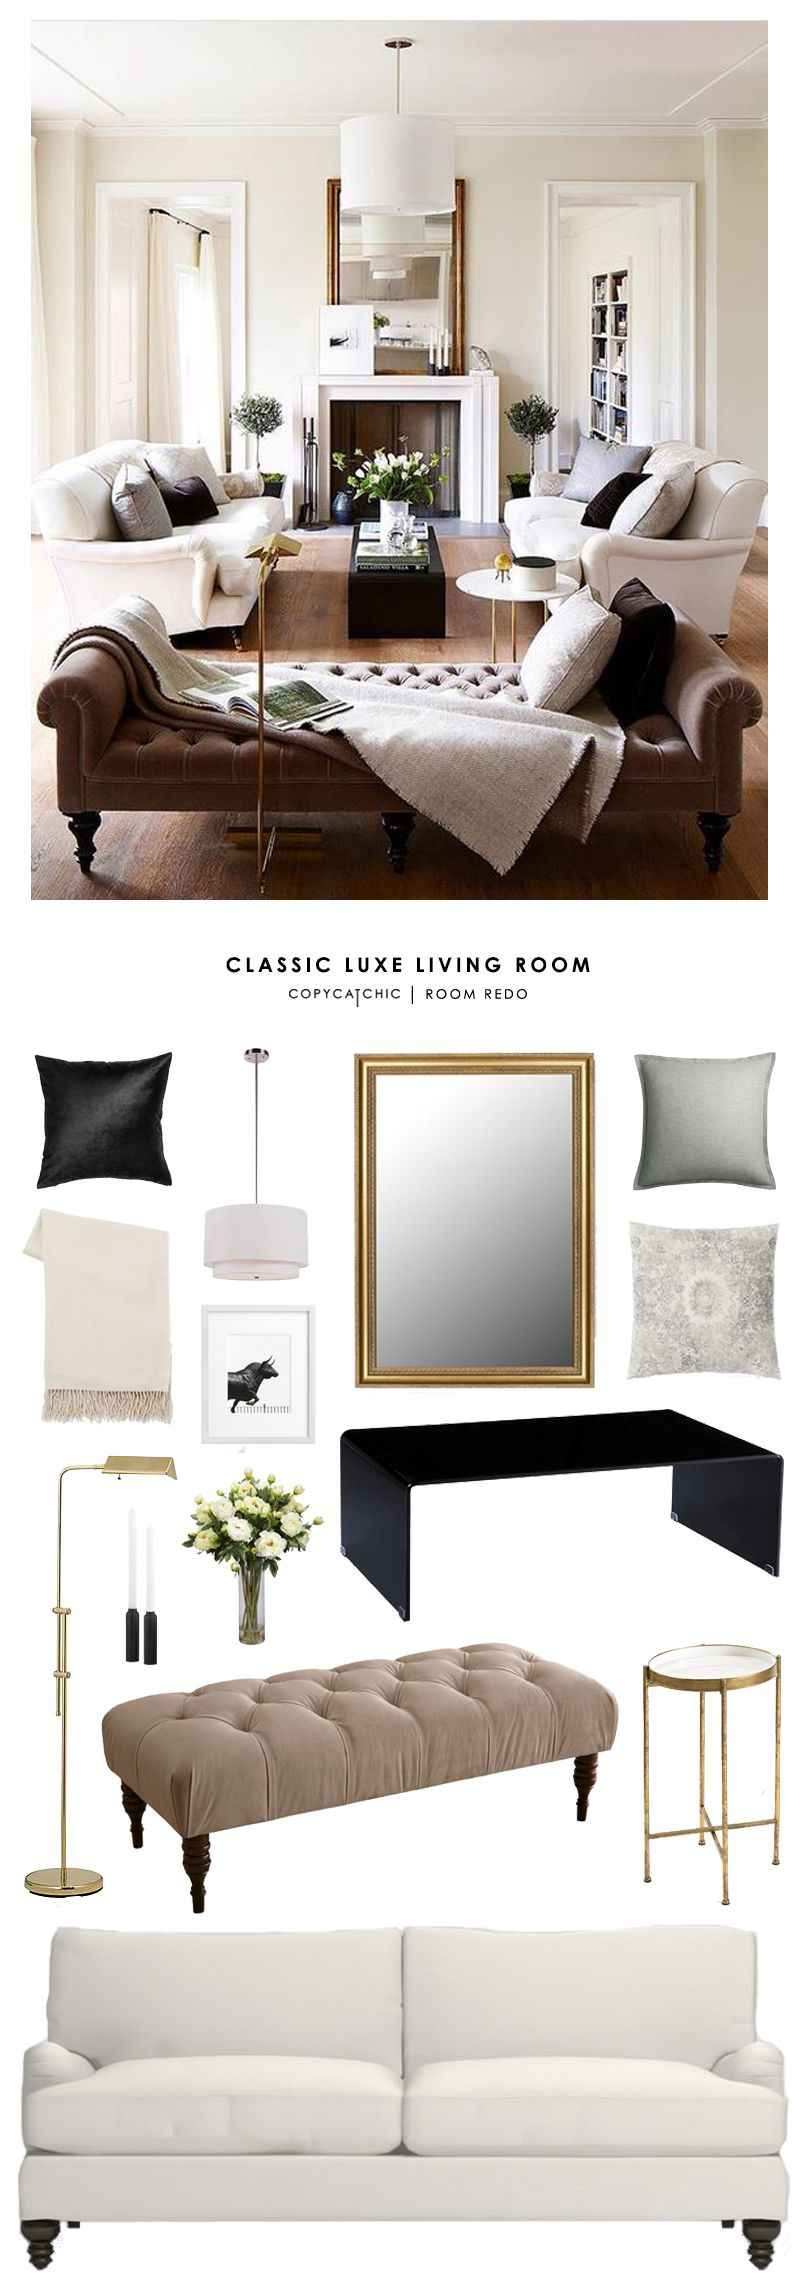 Copy Cat Chic Room Redo | Classic Luxe Living Room - copycatchic